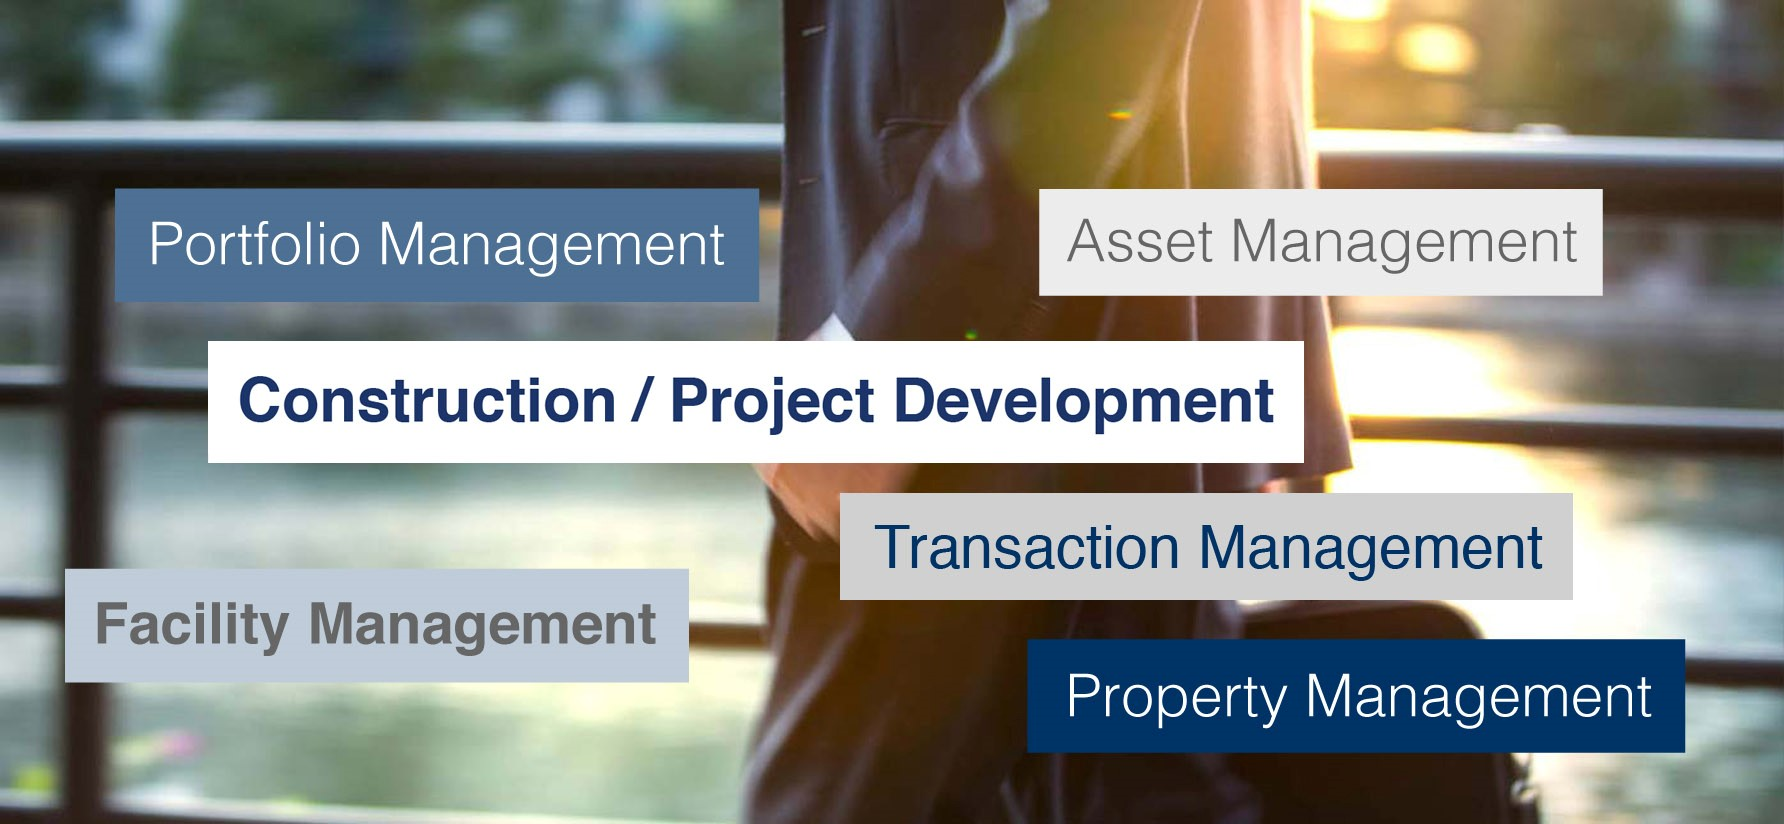 Pier Investment Partner - Services